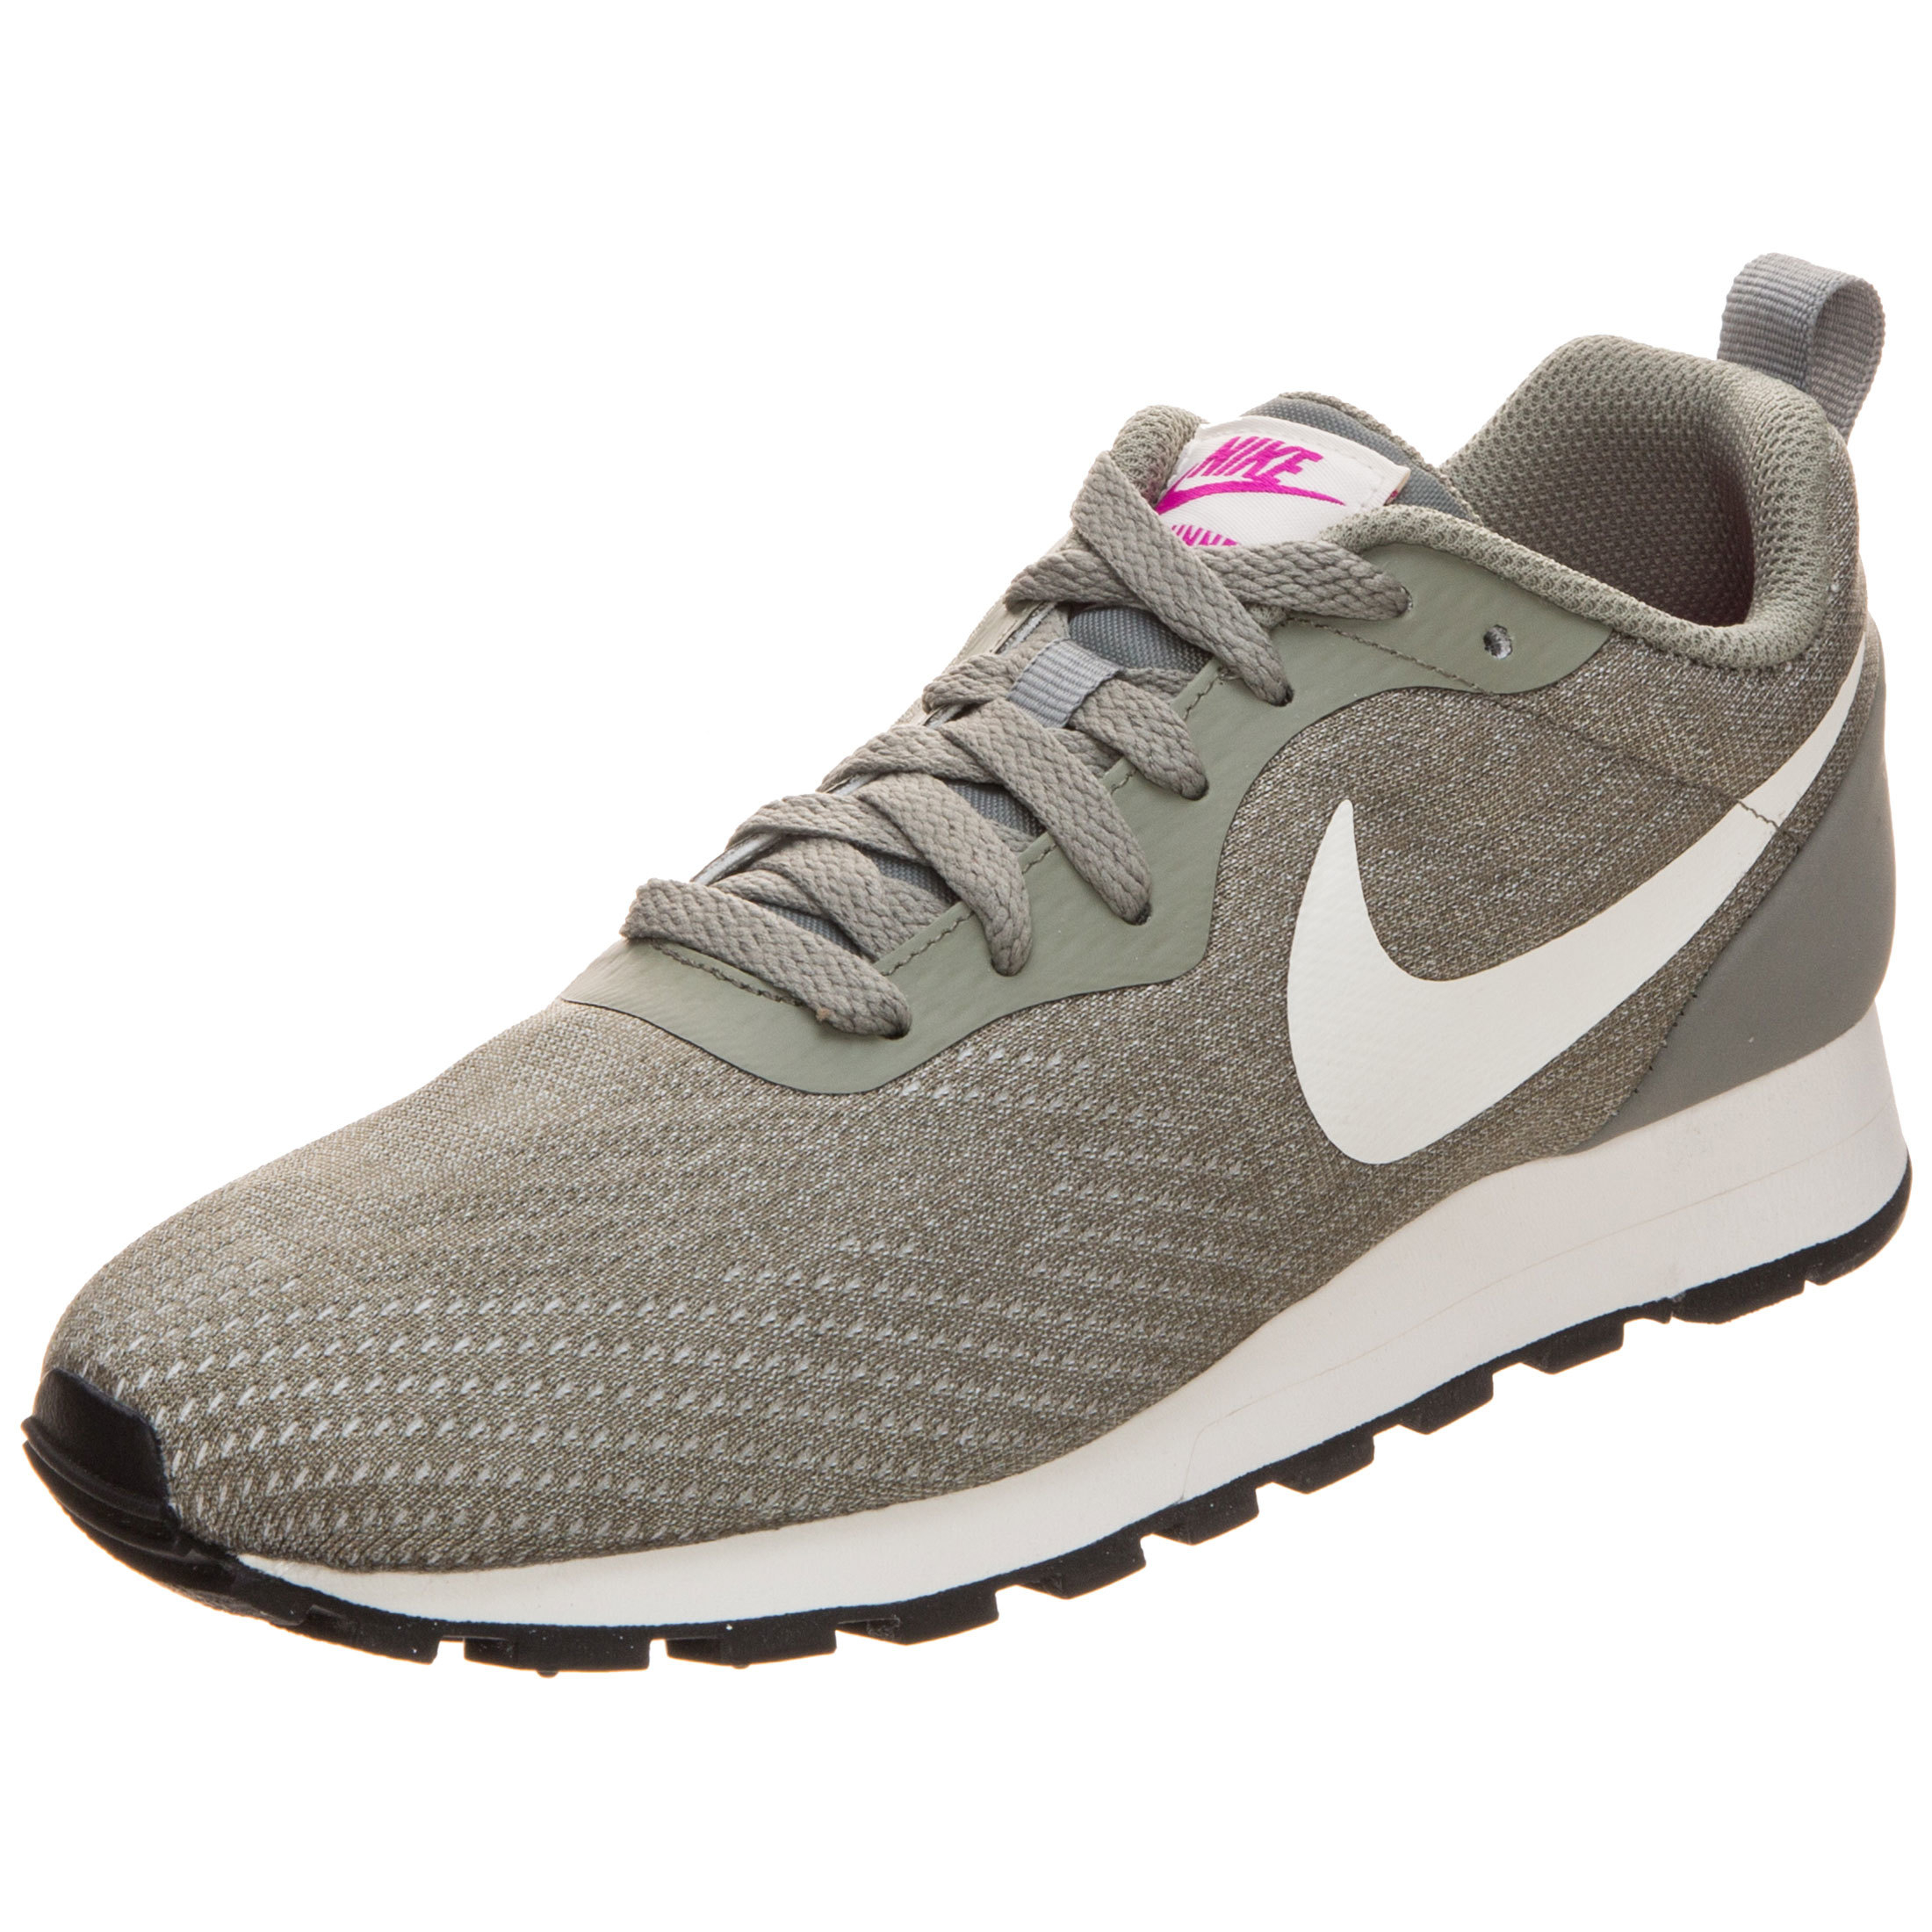 huge discount 4c352 cb30e Nike-MD-Runner-2 -Engineered-Mesh-Sneaker-Damen-916797-002-05-0 8c17dfa078a3b22d75ac0f93aa8fb469.jpg